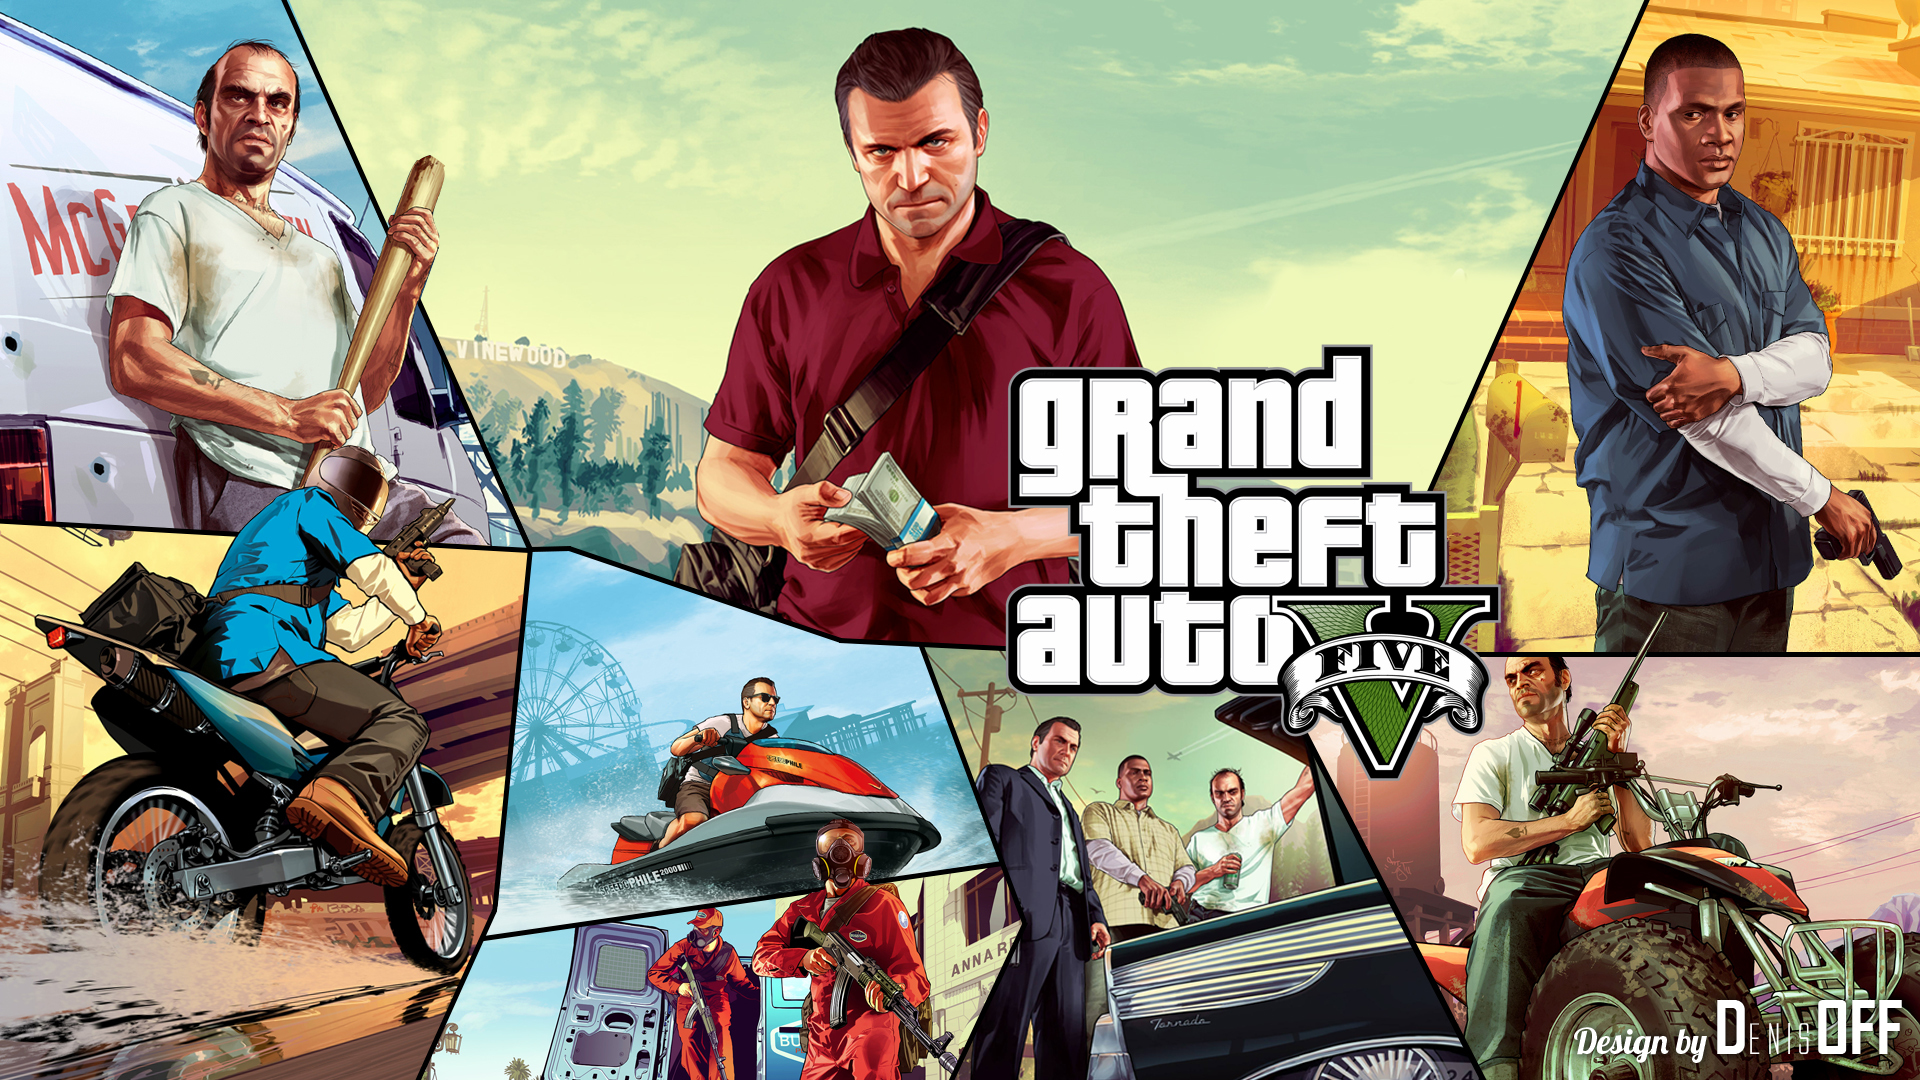 Grand-Theft-Auto-V-HD-Backgrounds-wallpaper-wp3806036